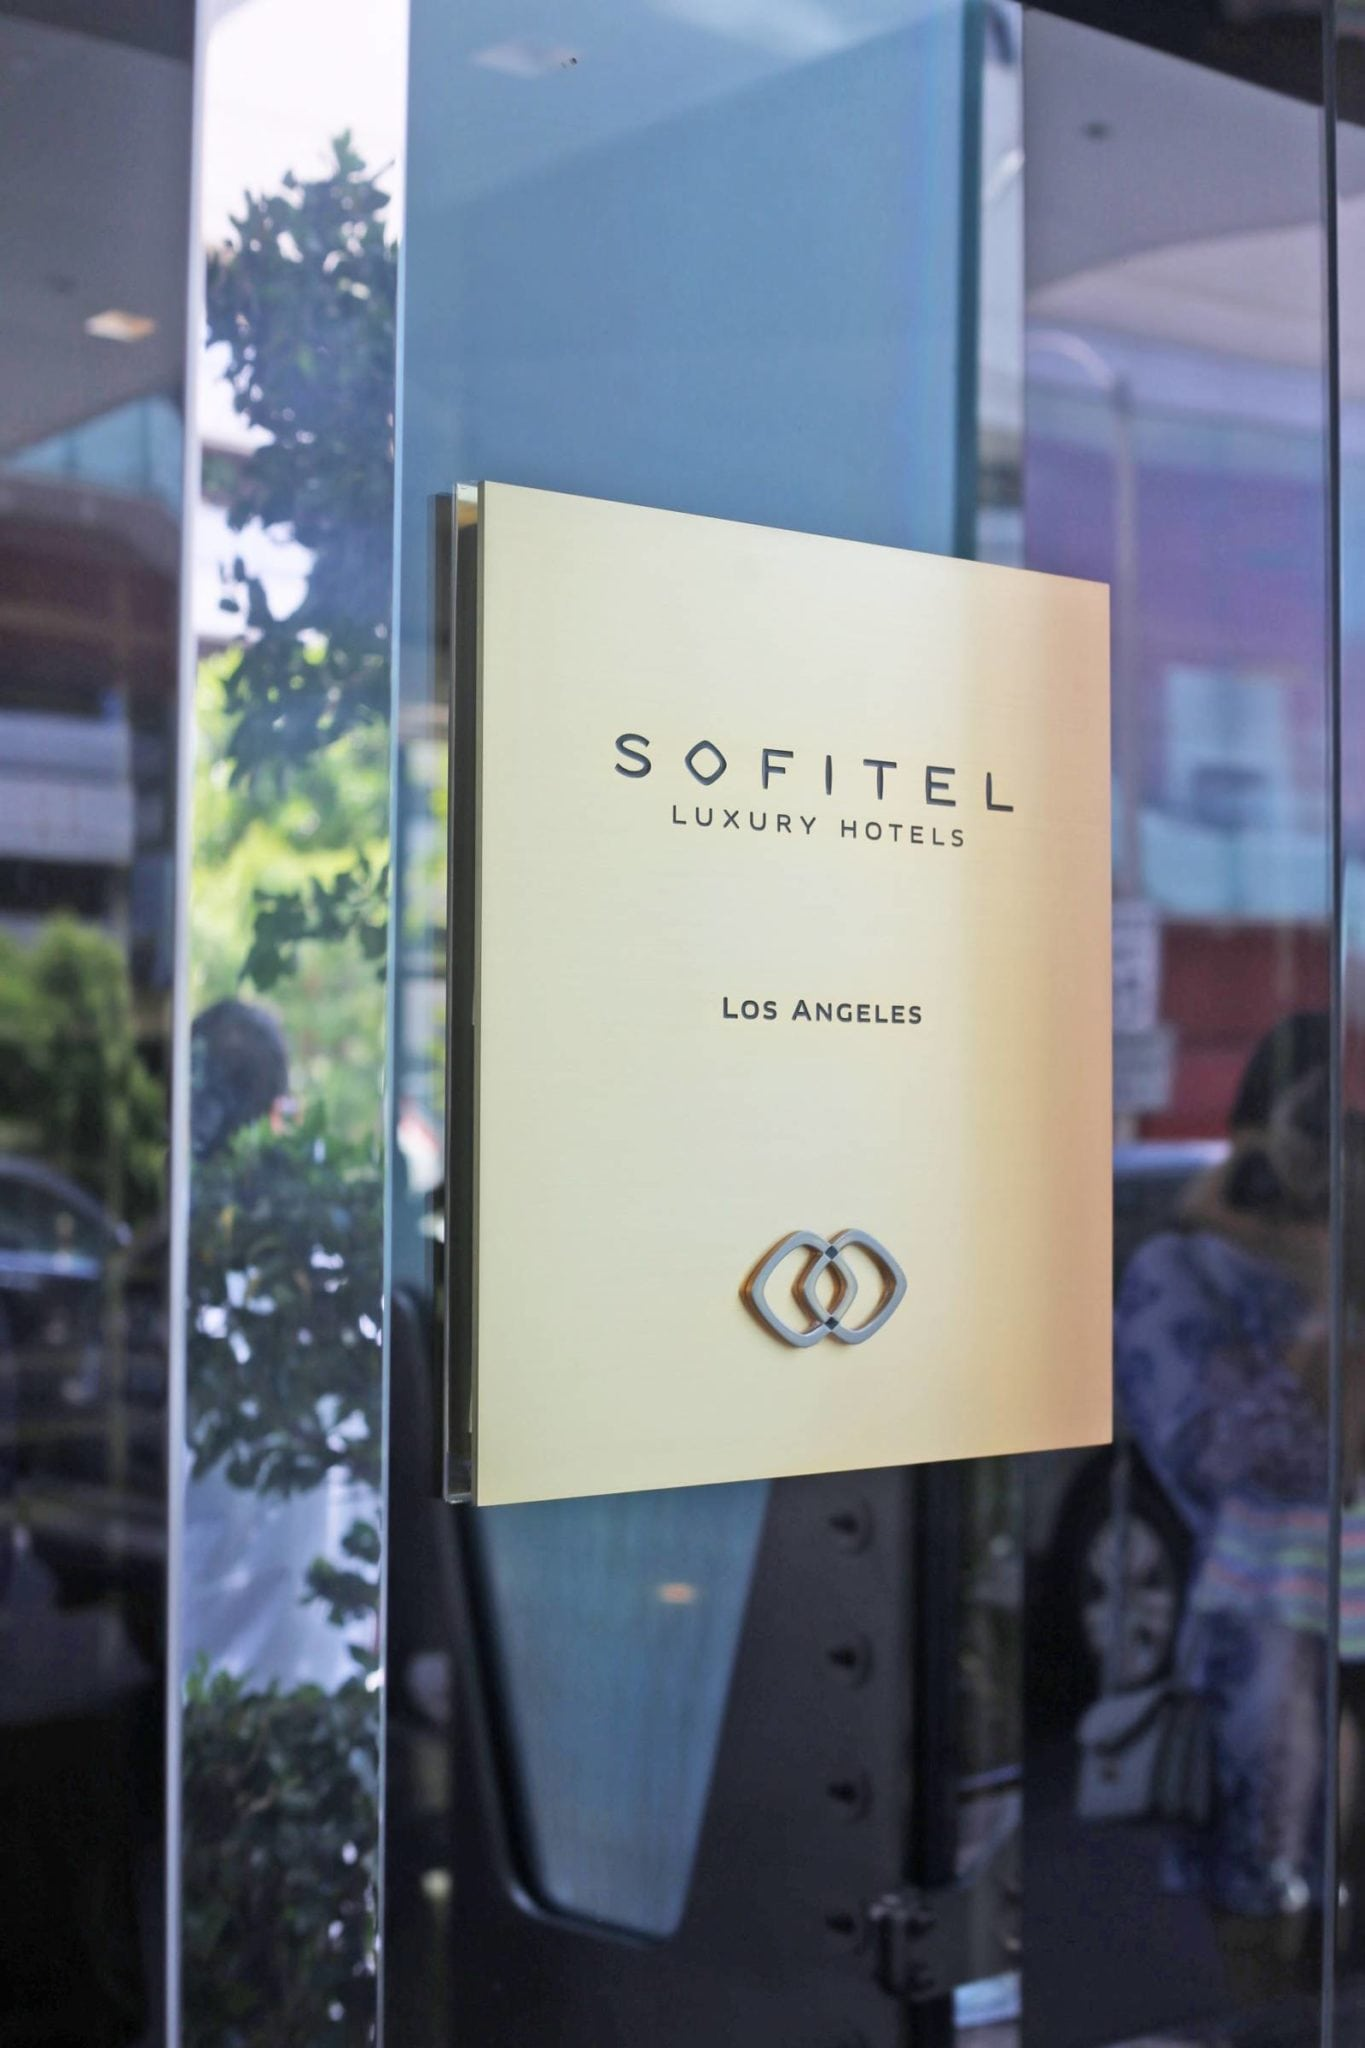 sofitel luxury hotels in socal | what to expect at create and cultivate | Create and Cultivate conference | C&C | conference review | beauty blogger Mash Elle